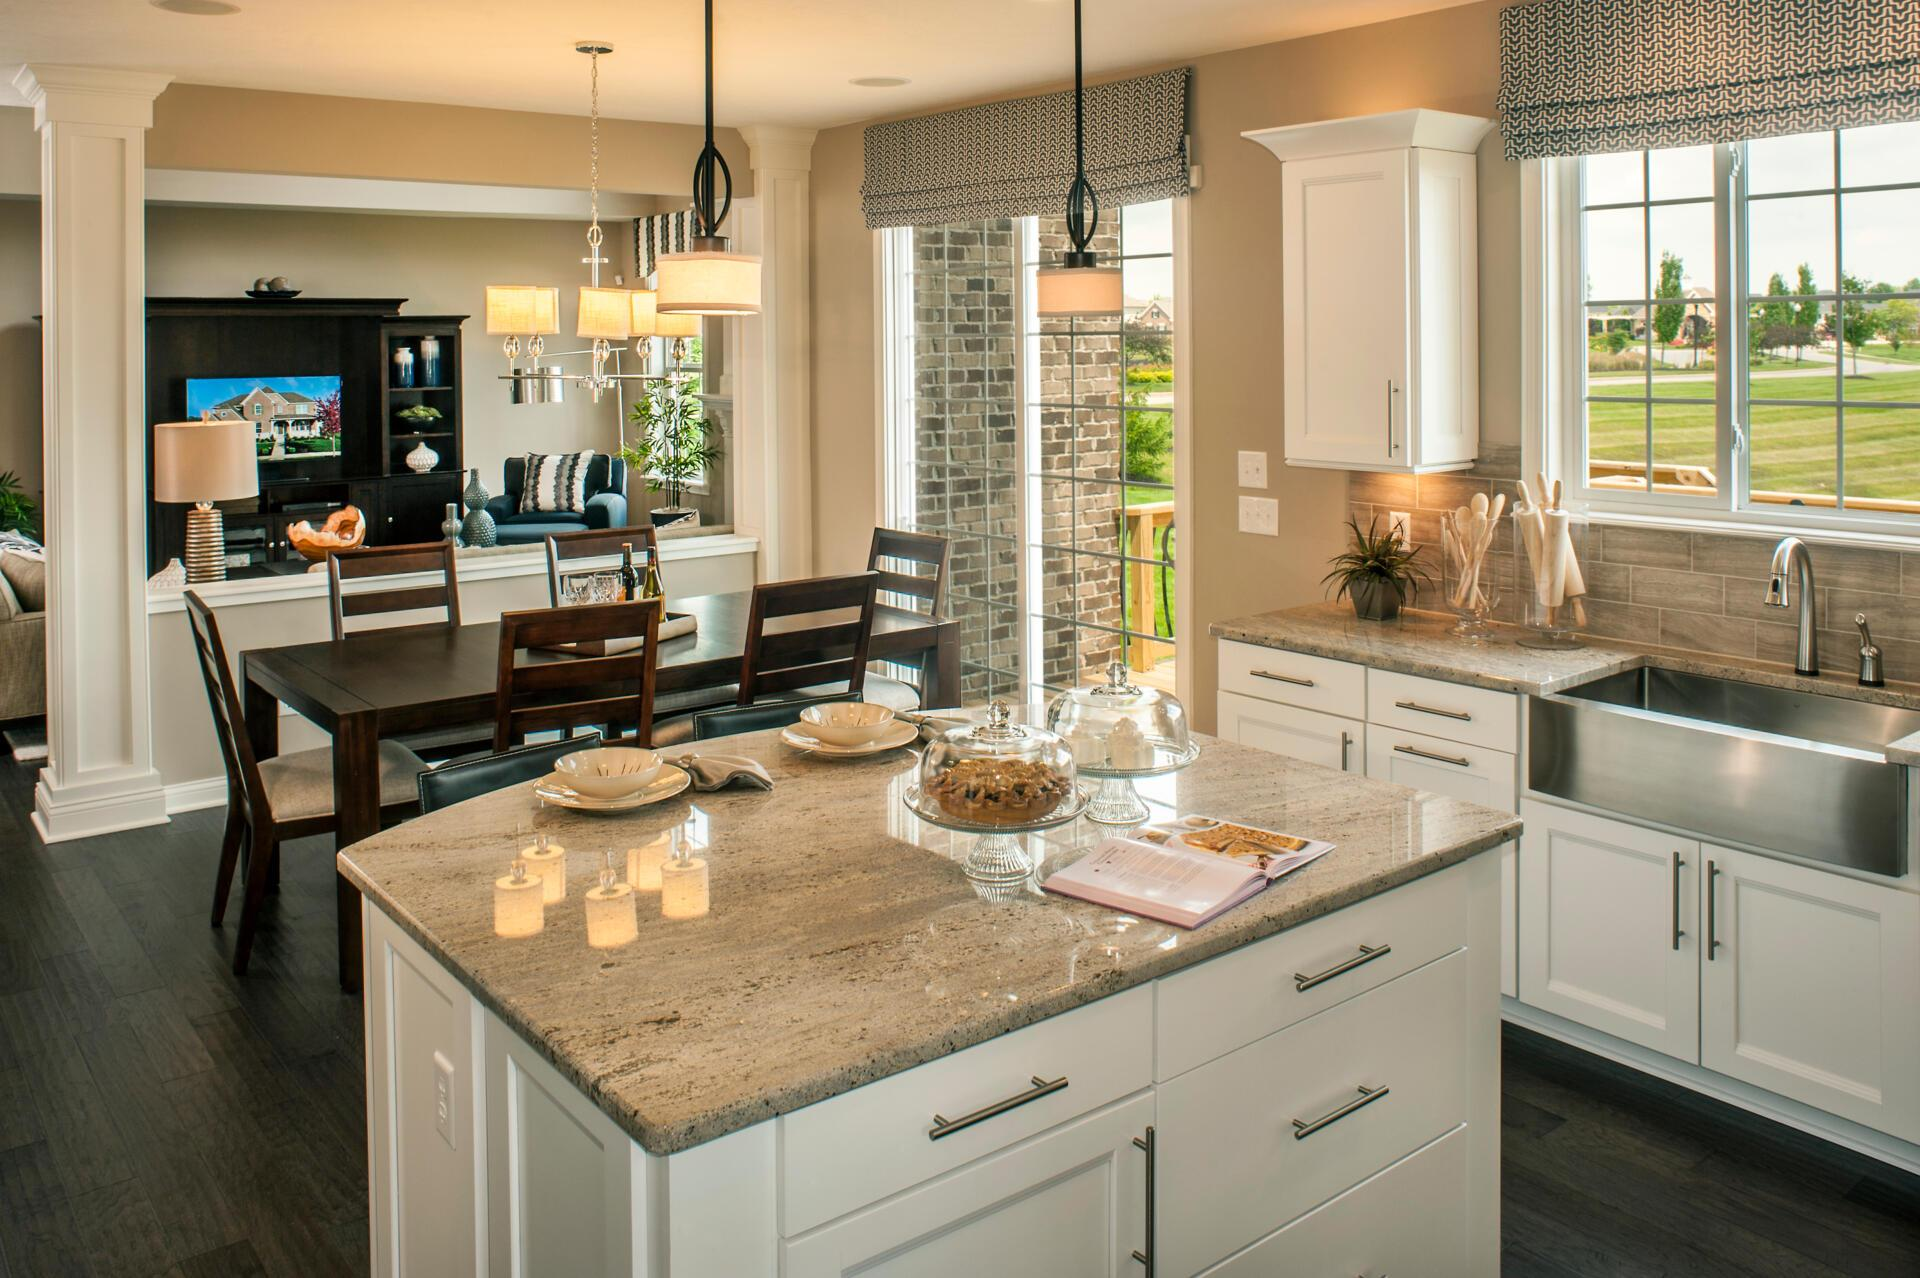 Kitchen featured in the Langdon By Drees Homes in Cincinnati, OH